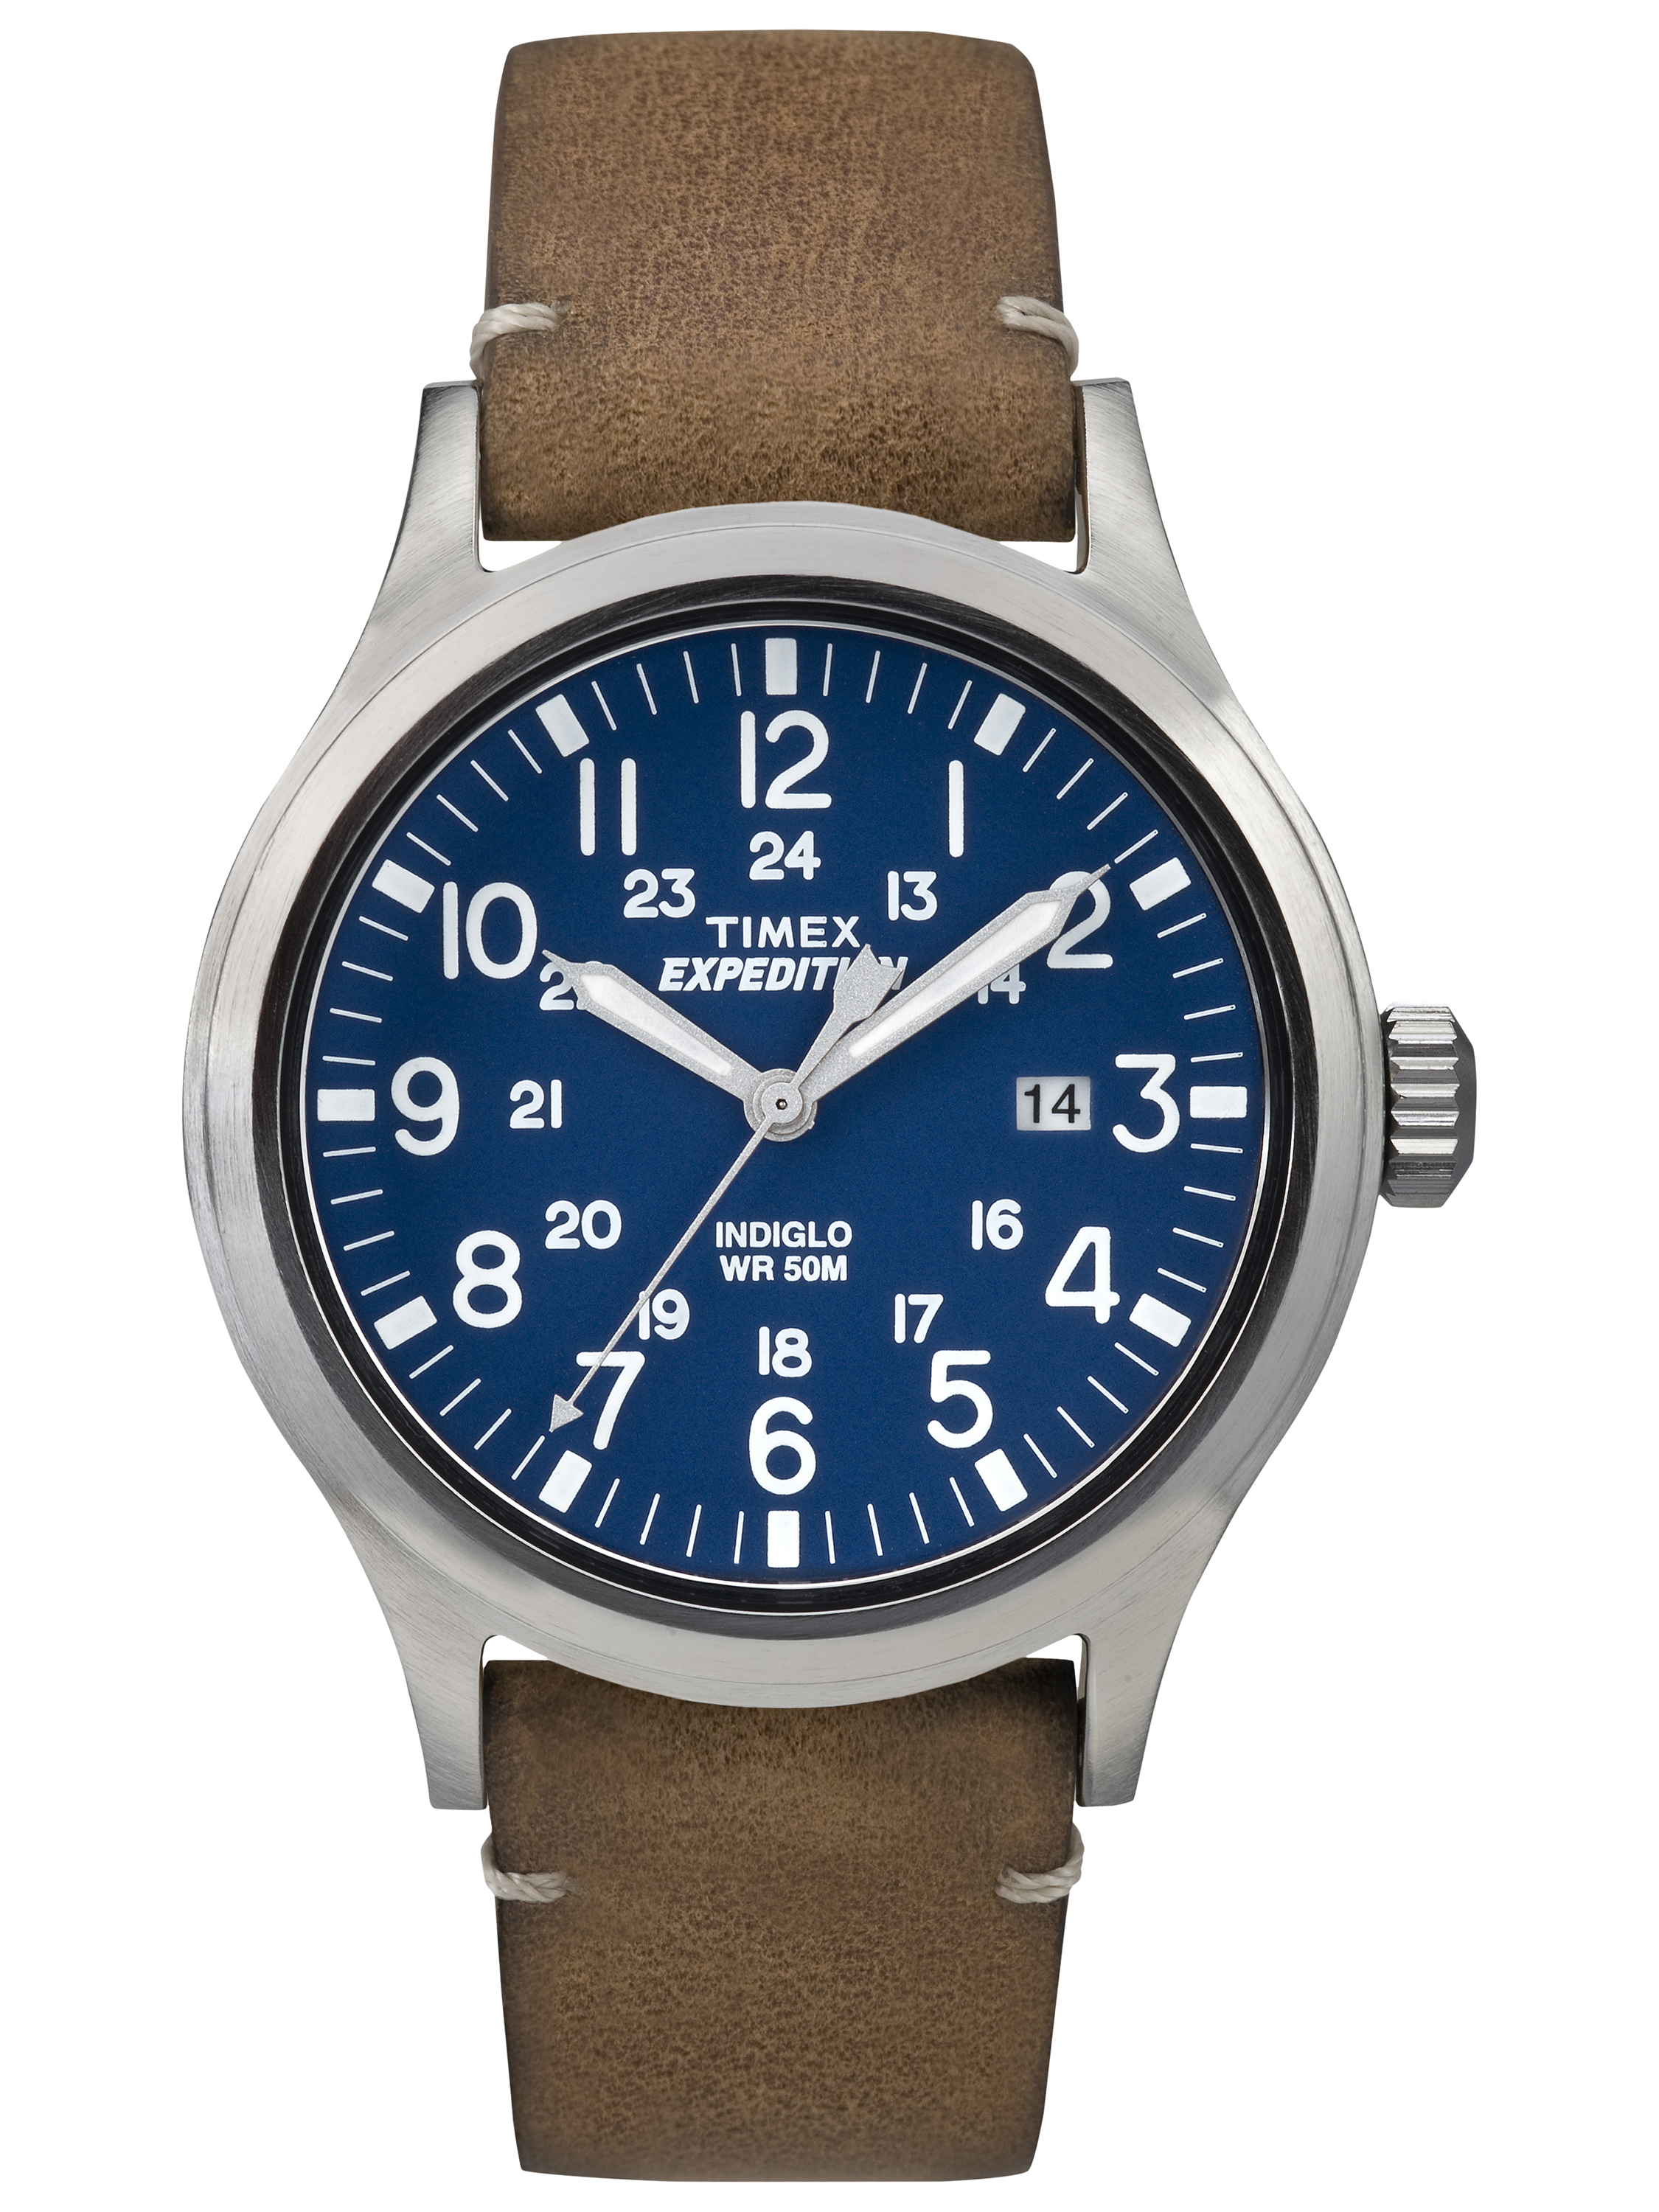 Timex Men's Expedition Scout Watch, Tan Nylon Strap by Timex